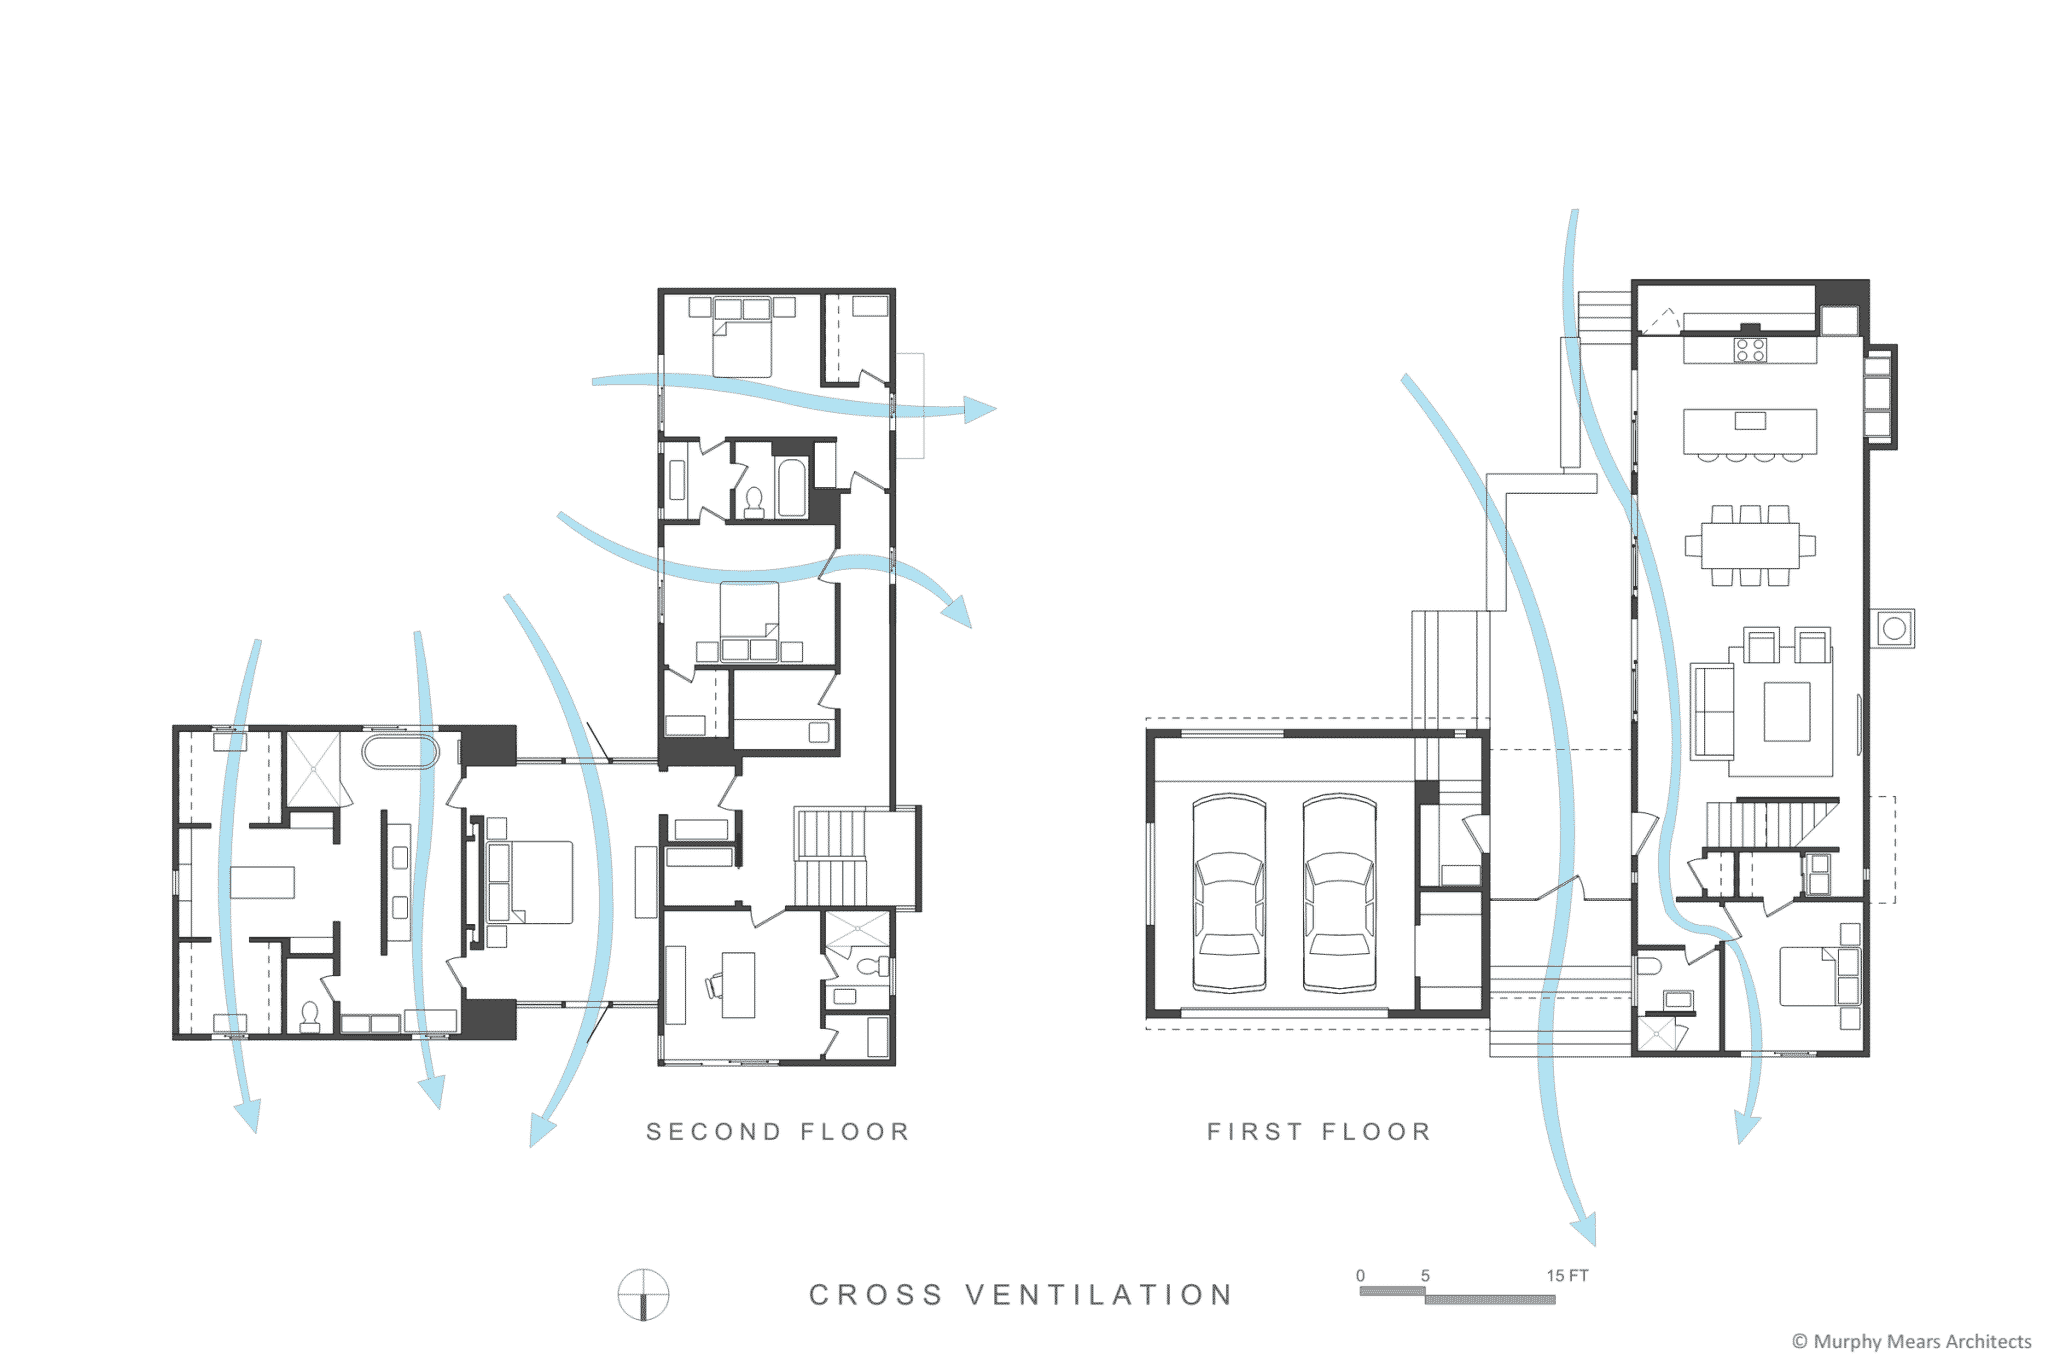 cross ventilation through first and second floor areas zero lot